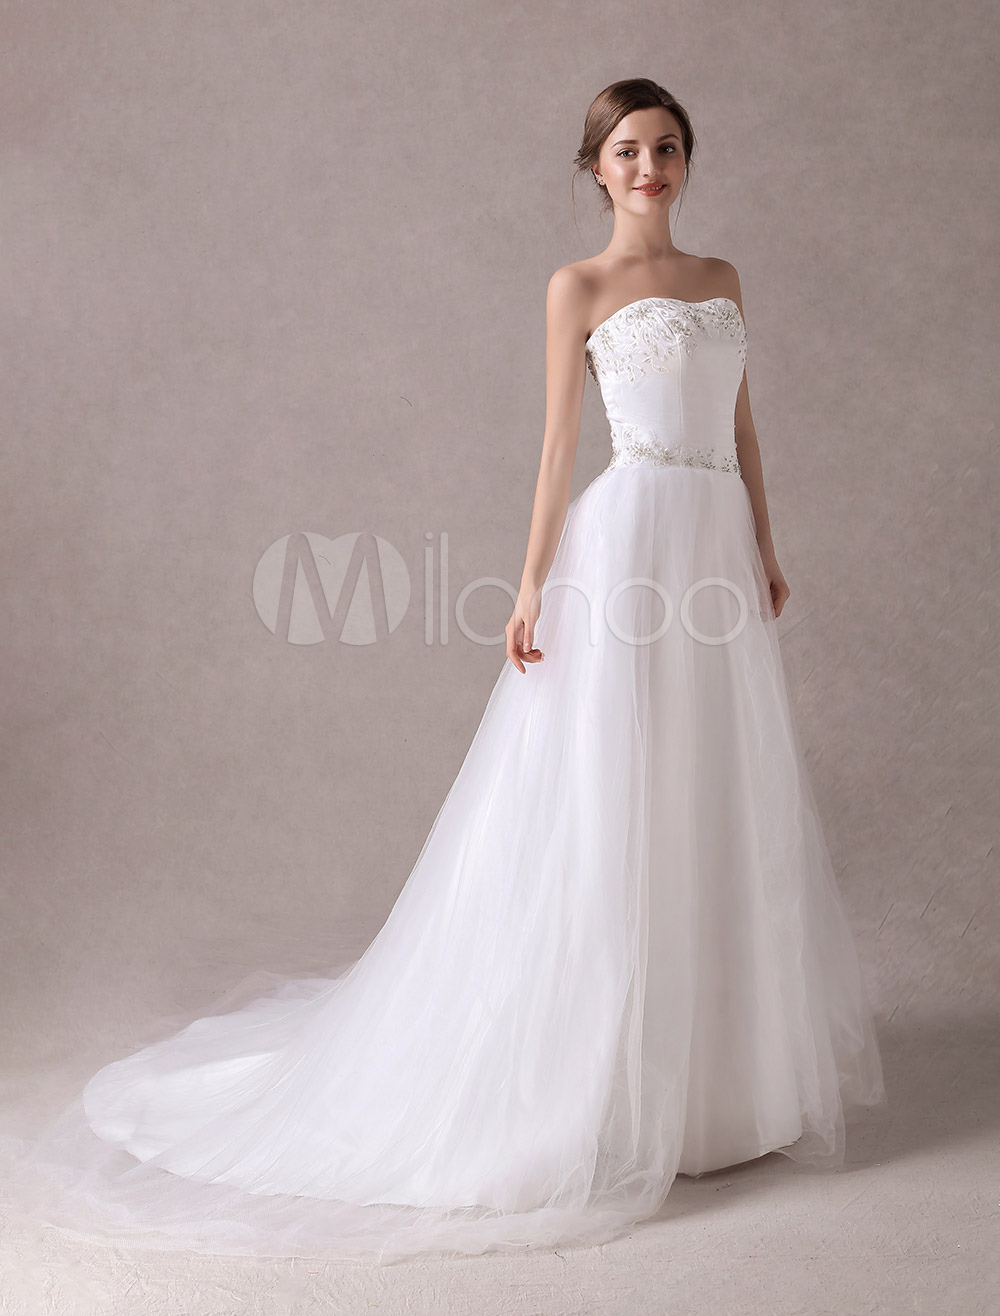 White A-line Strapless Embroidered Organza Bridal Wedding Dress